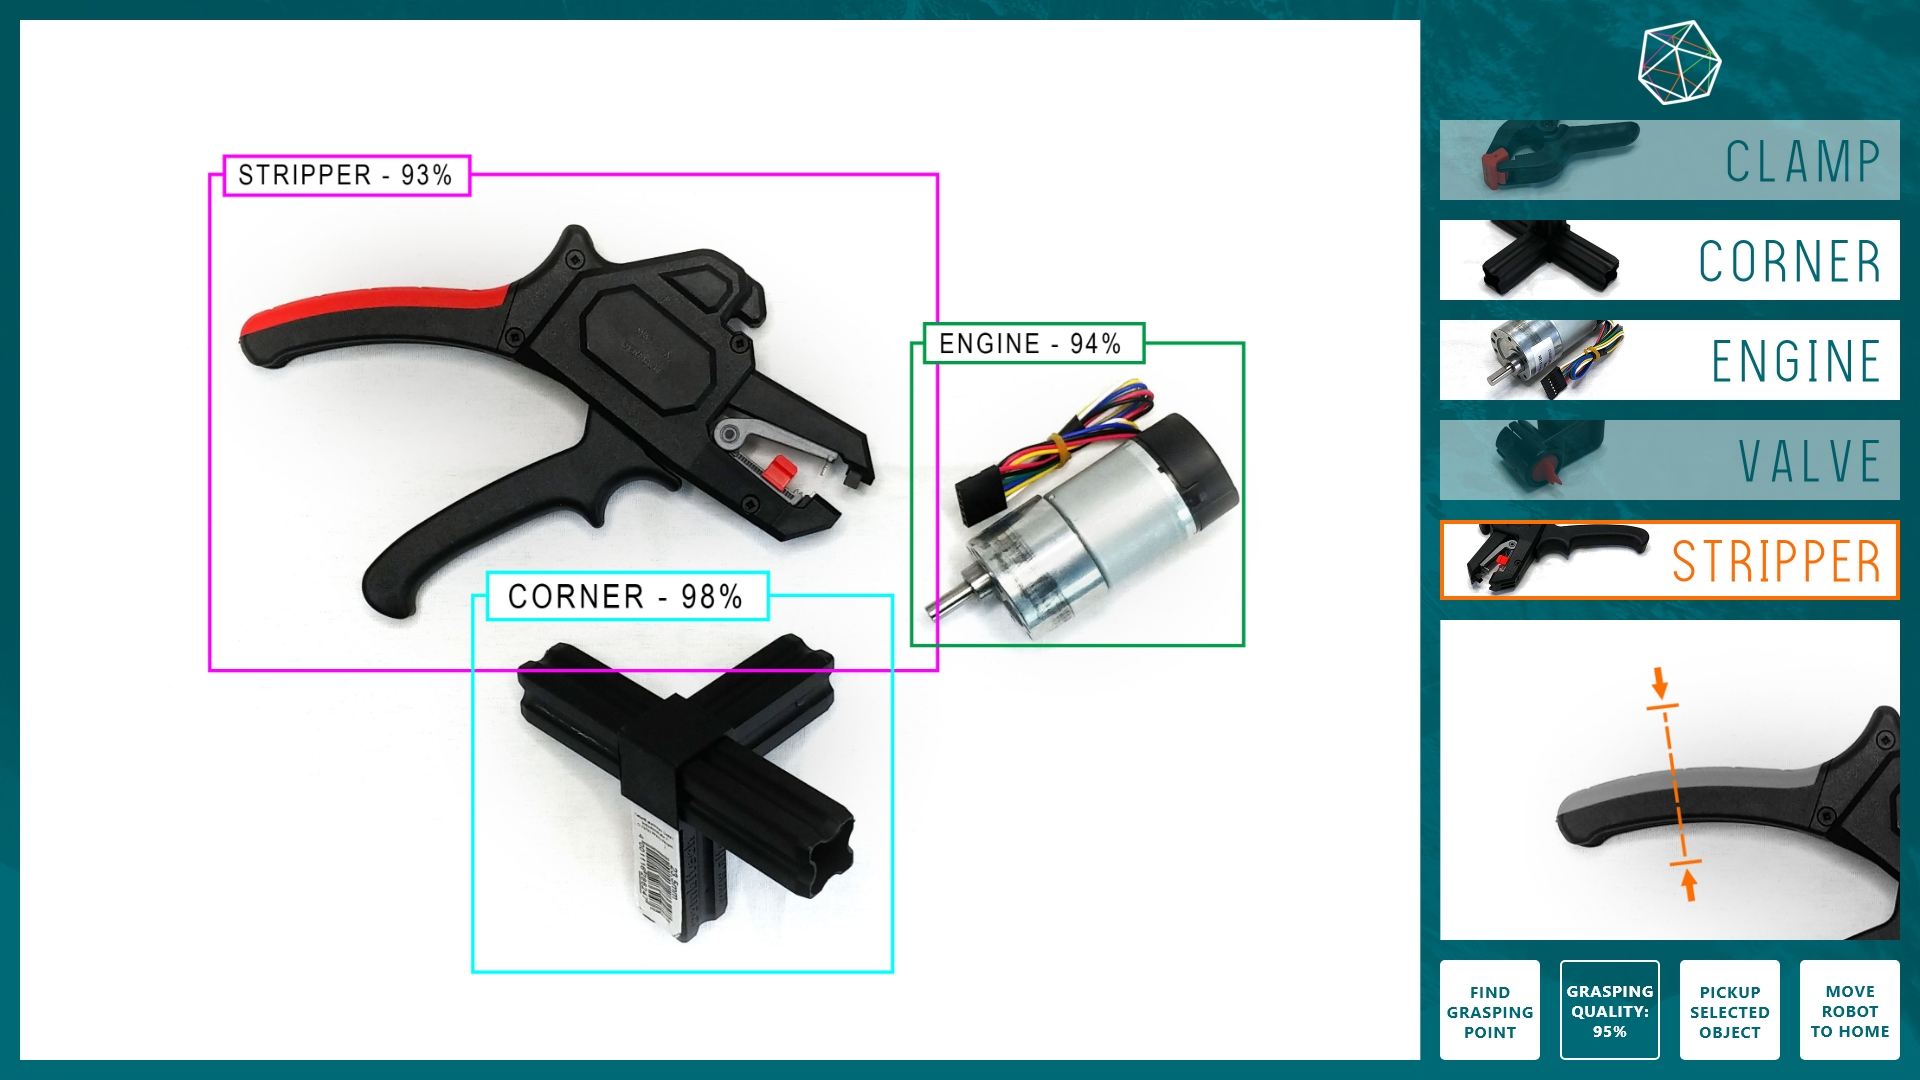 Intuitive user interface for manipulation and interaction, in this case selecting an object to be picked up and reviewing the grasping point